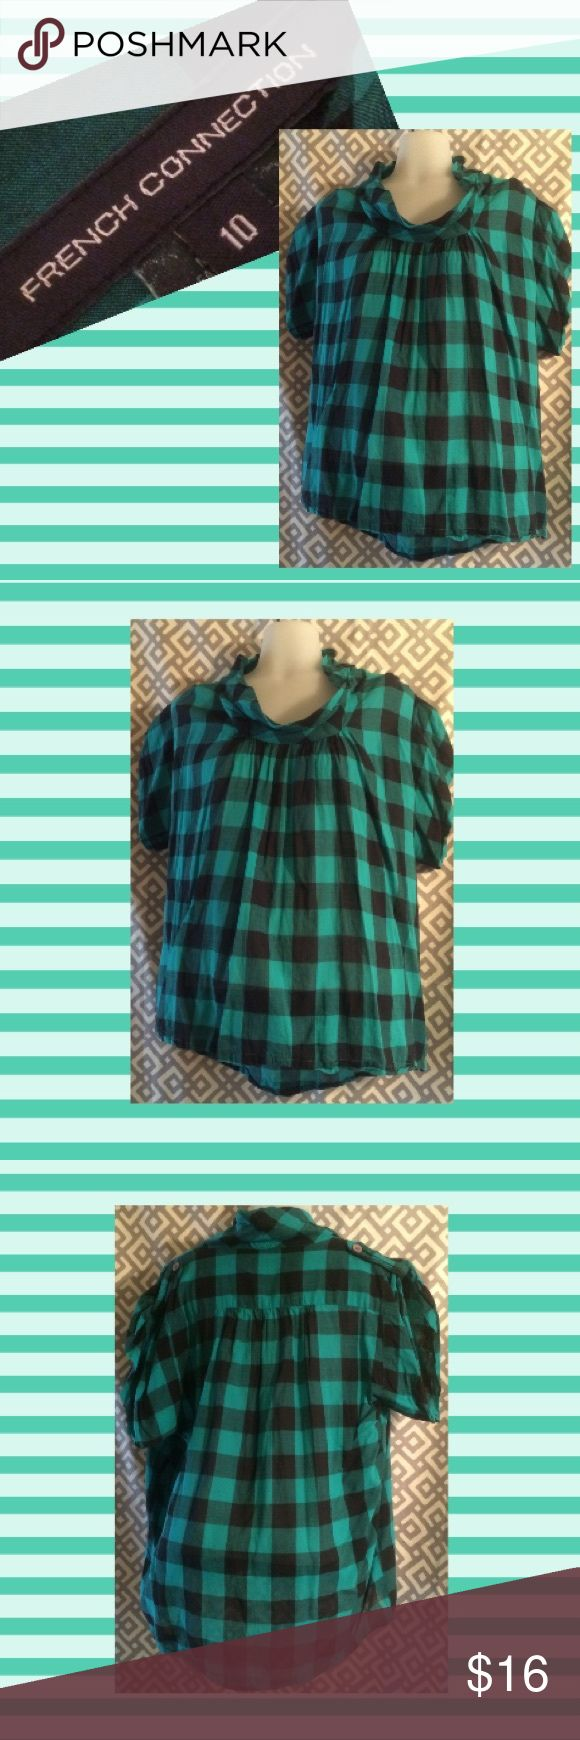 French Connection top, 10 Teal and black plaid top with adjustable sleeves. Great with skinny jeans and boots. French Connection Tops